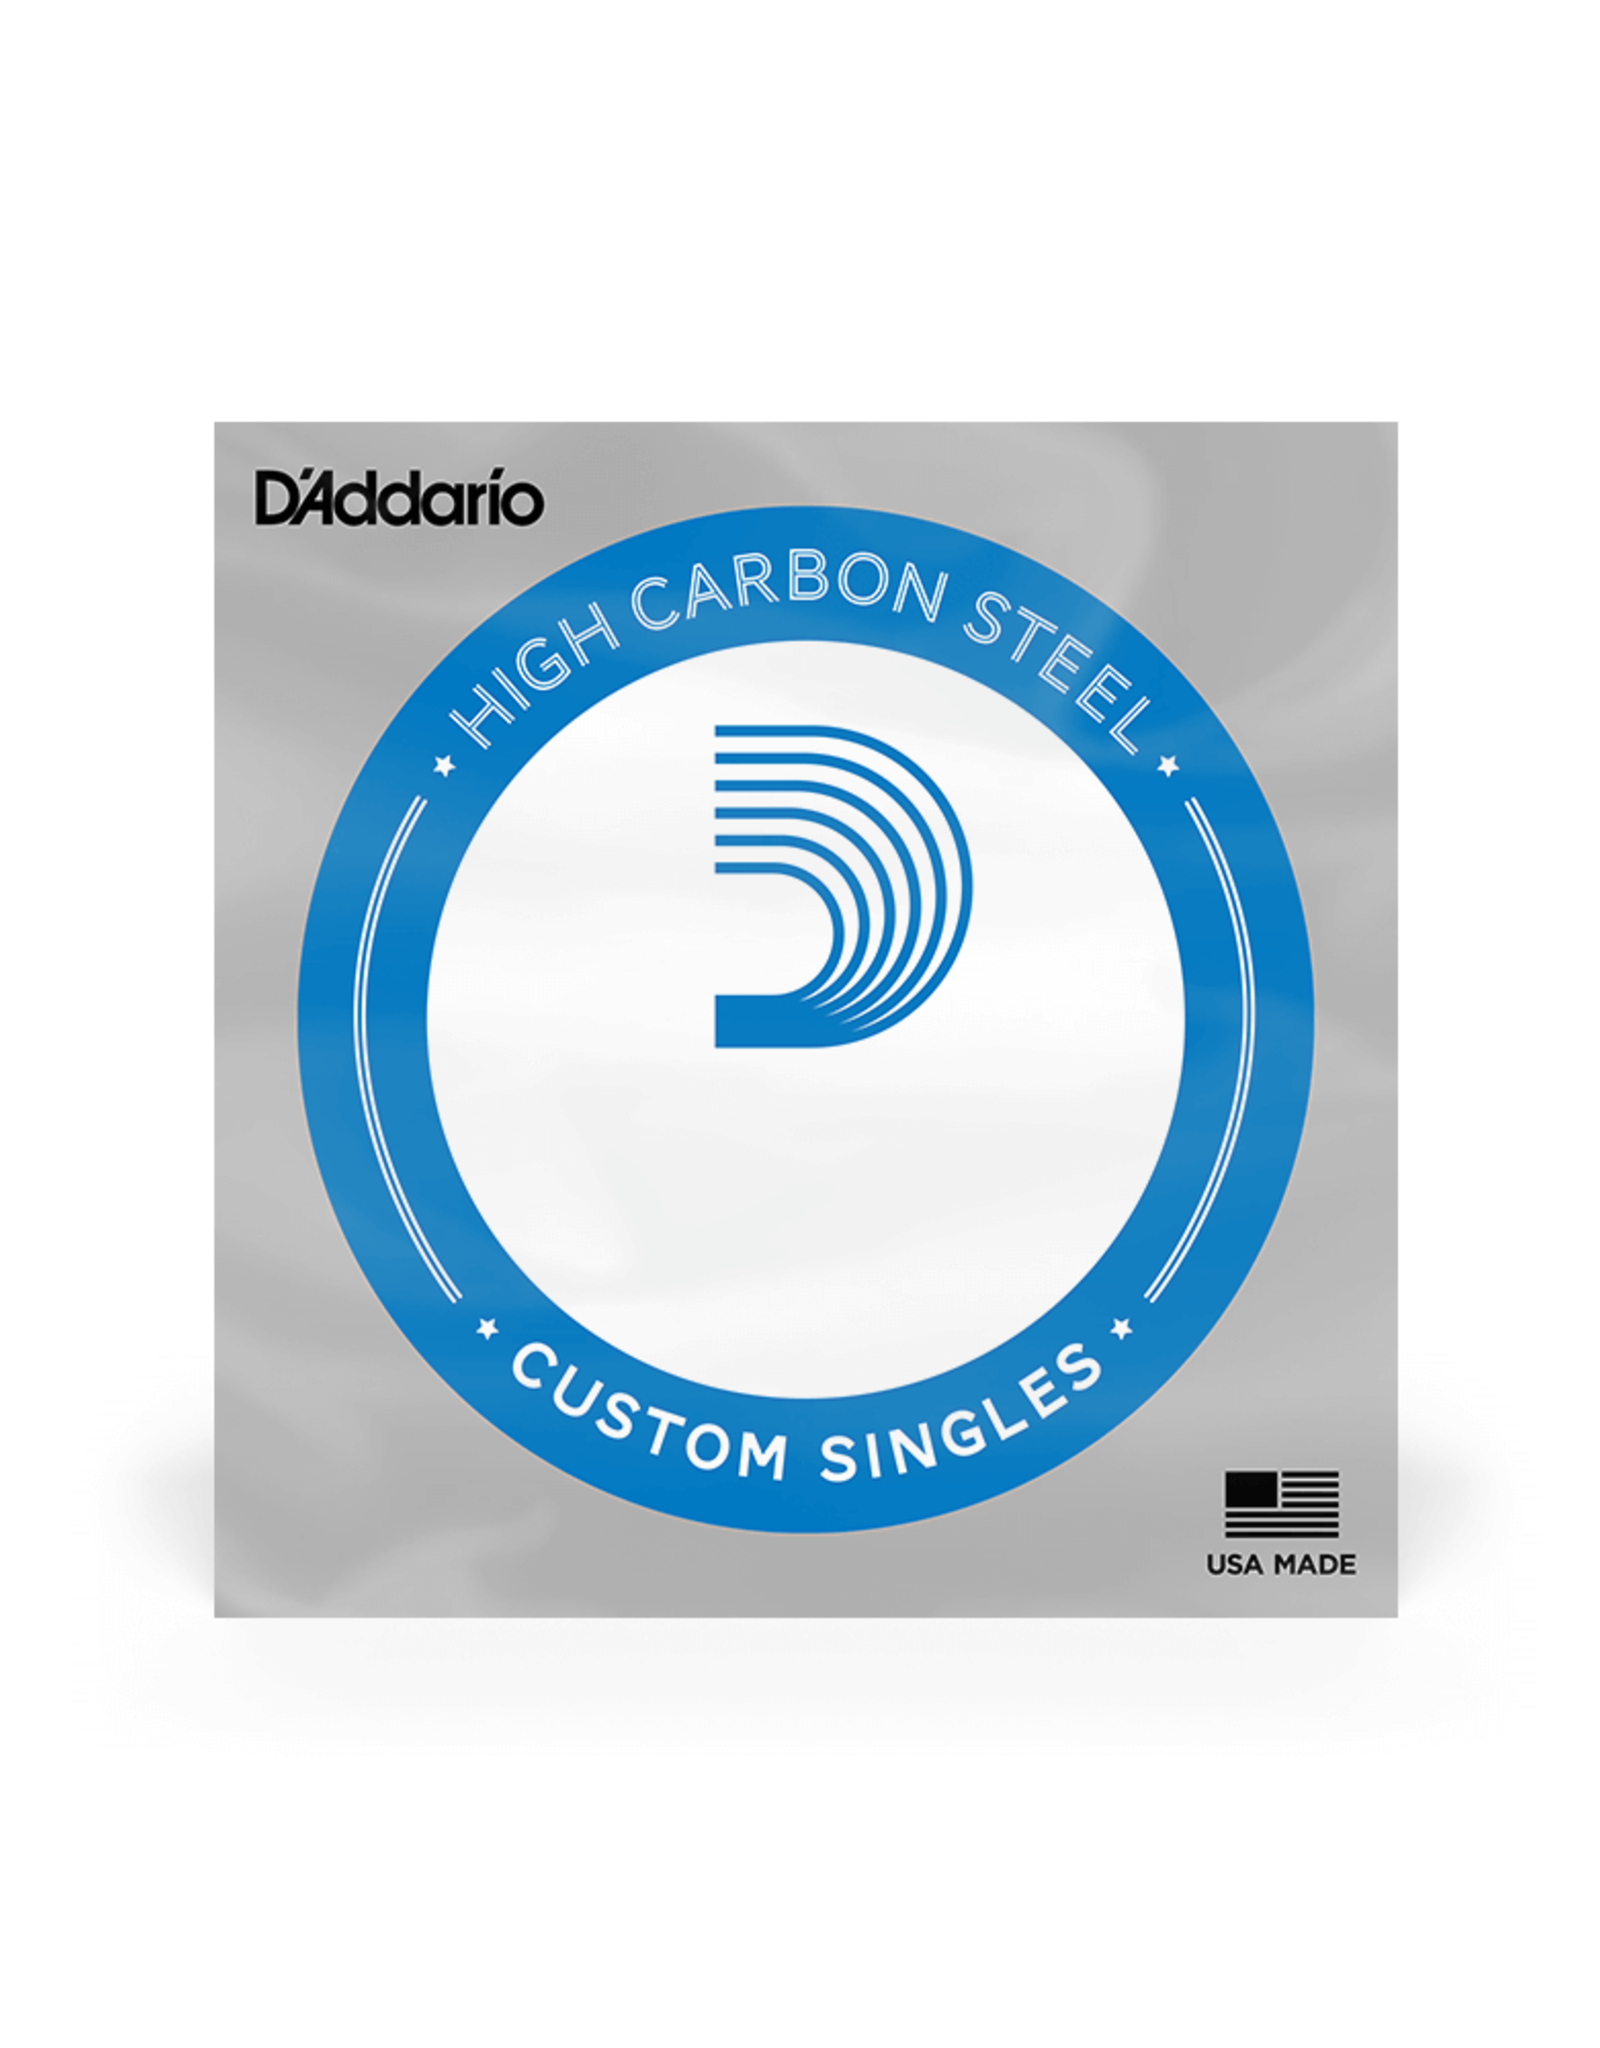 D'Addario D'Addario Plain Steel Single String